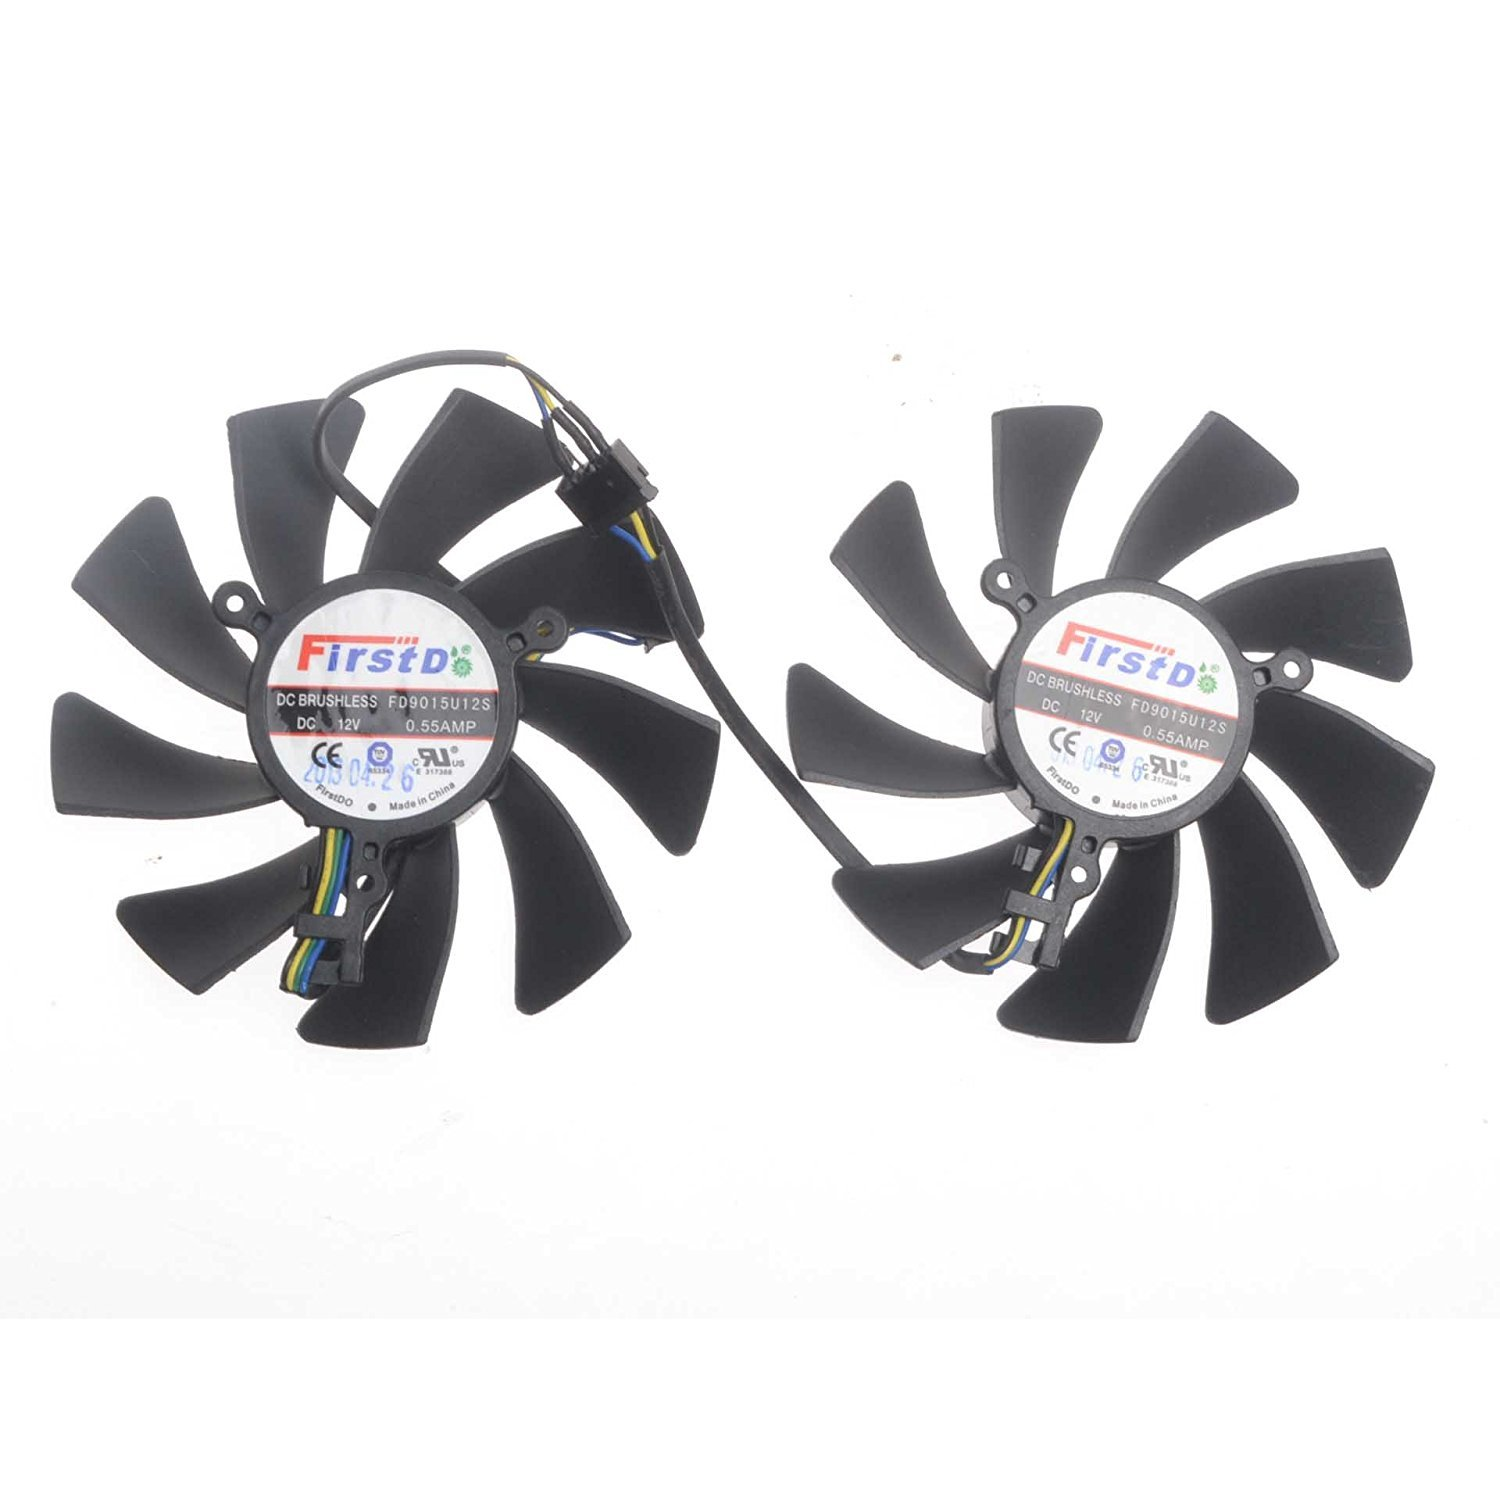 FD9015U12S 12V 0.55A 75mm 4 Pin Replacement Cooling Fan For HD7950 HD7970 Graphics Card Fan